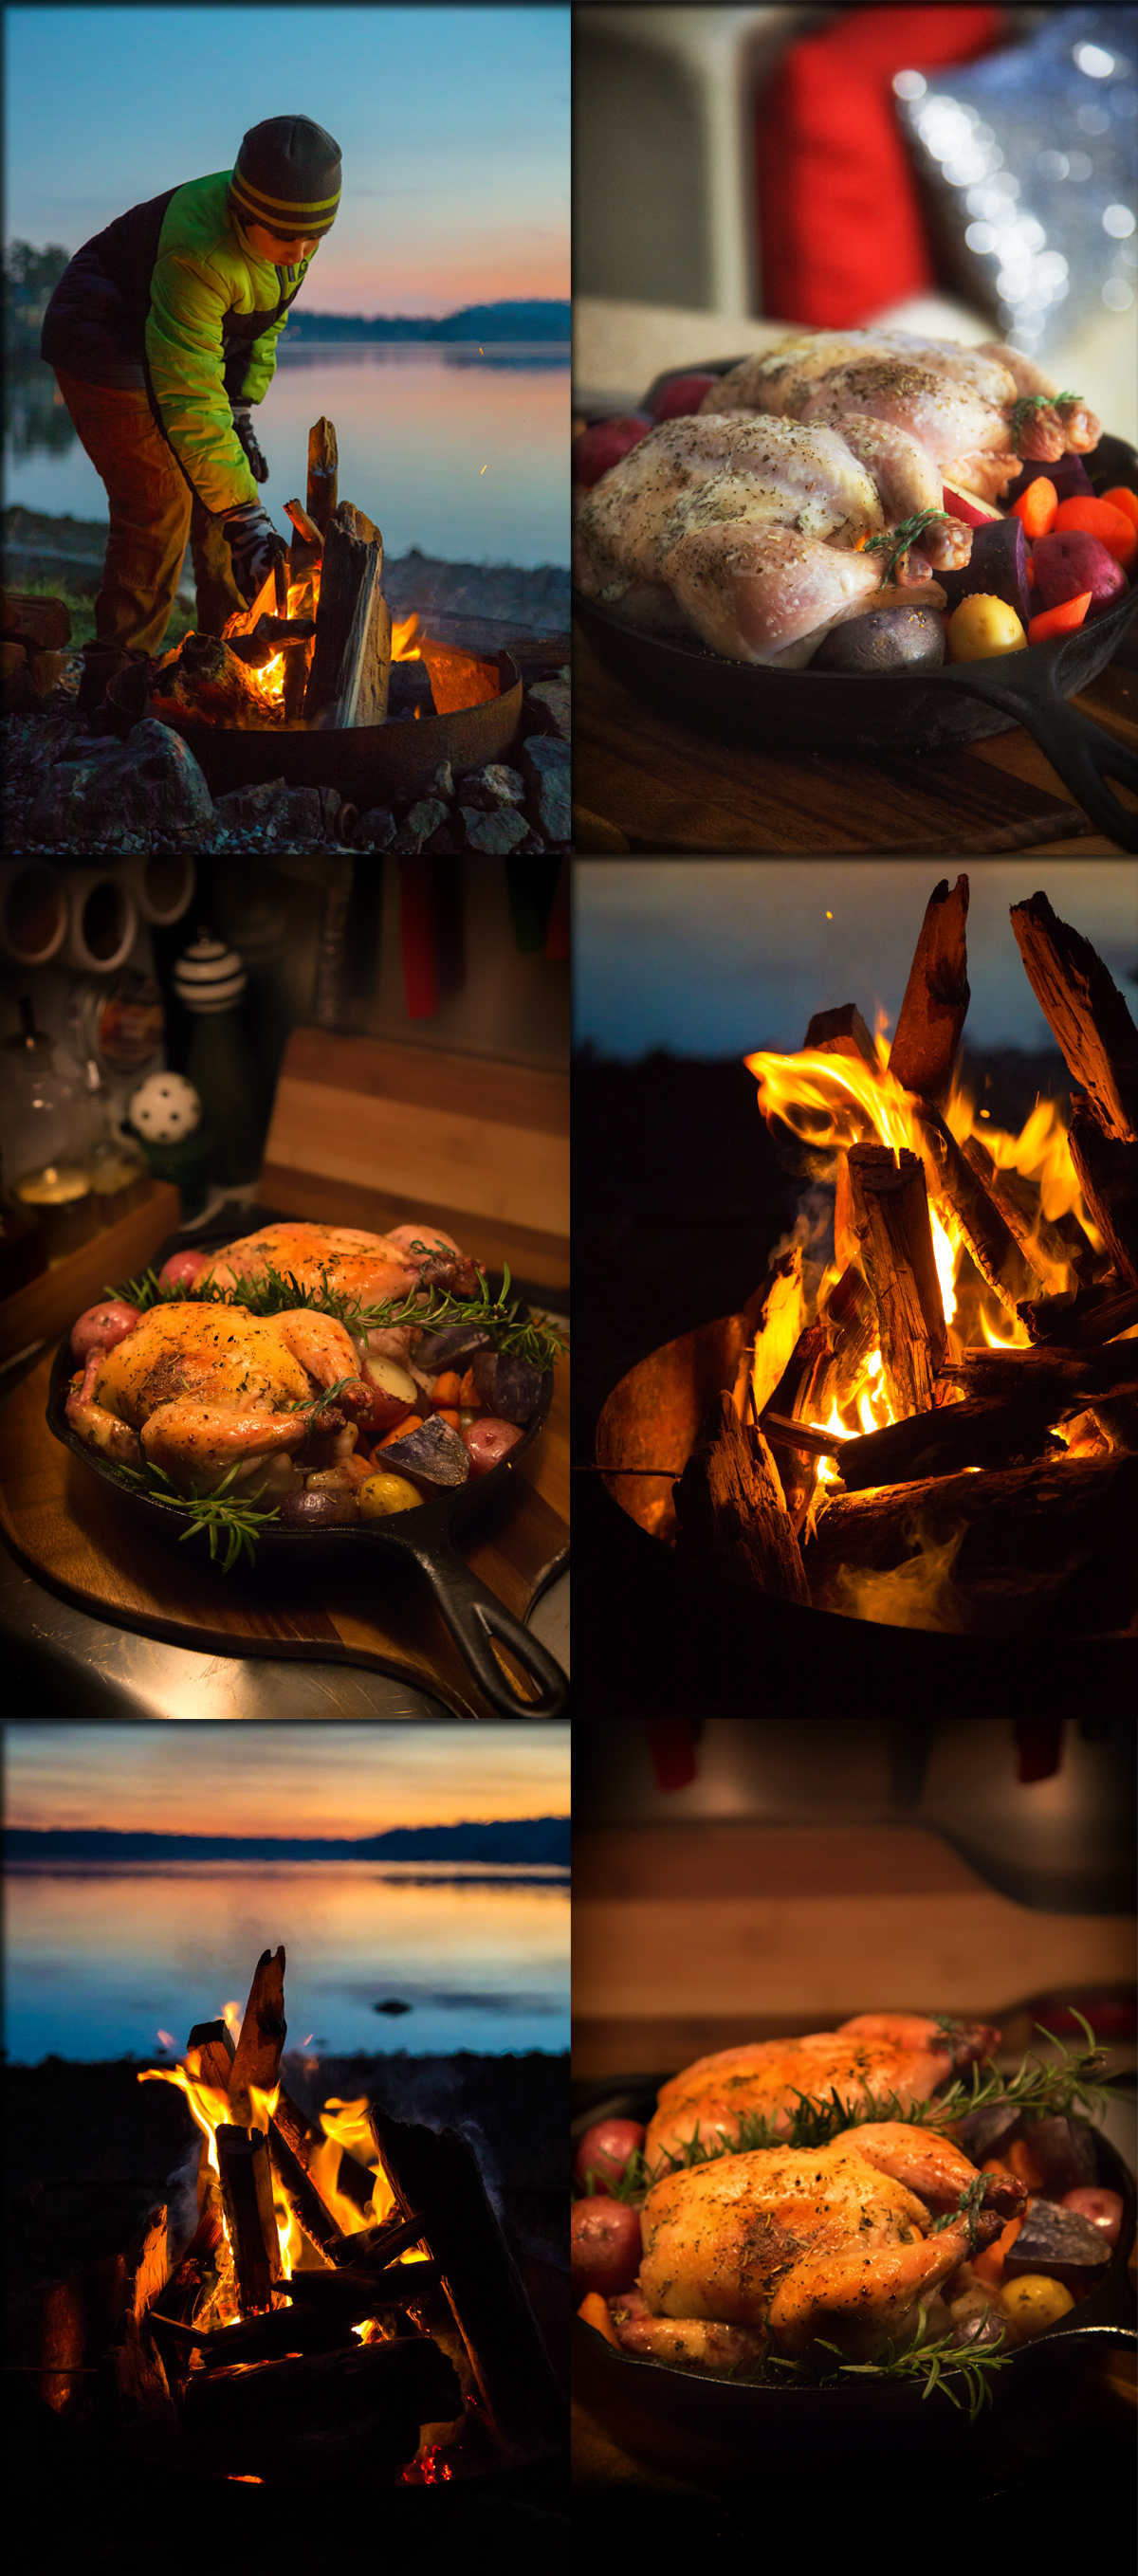 Cornish Game Hens and a Campfire via J5MM.com // Airstream Road Trip